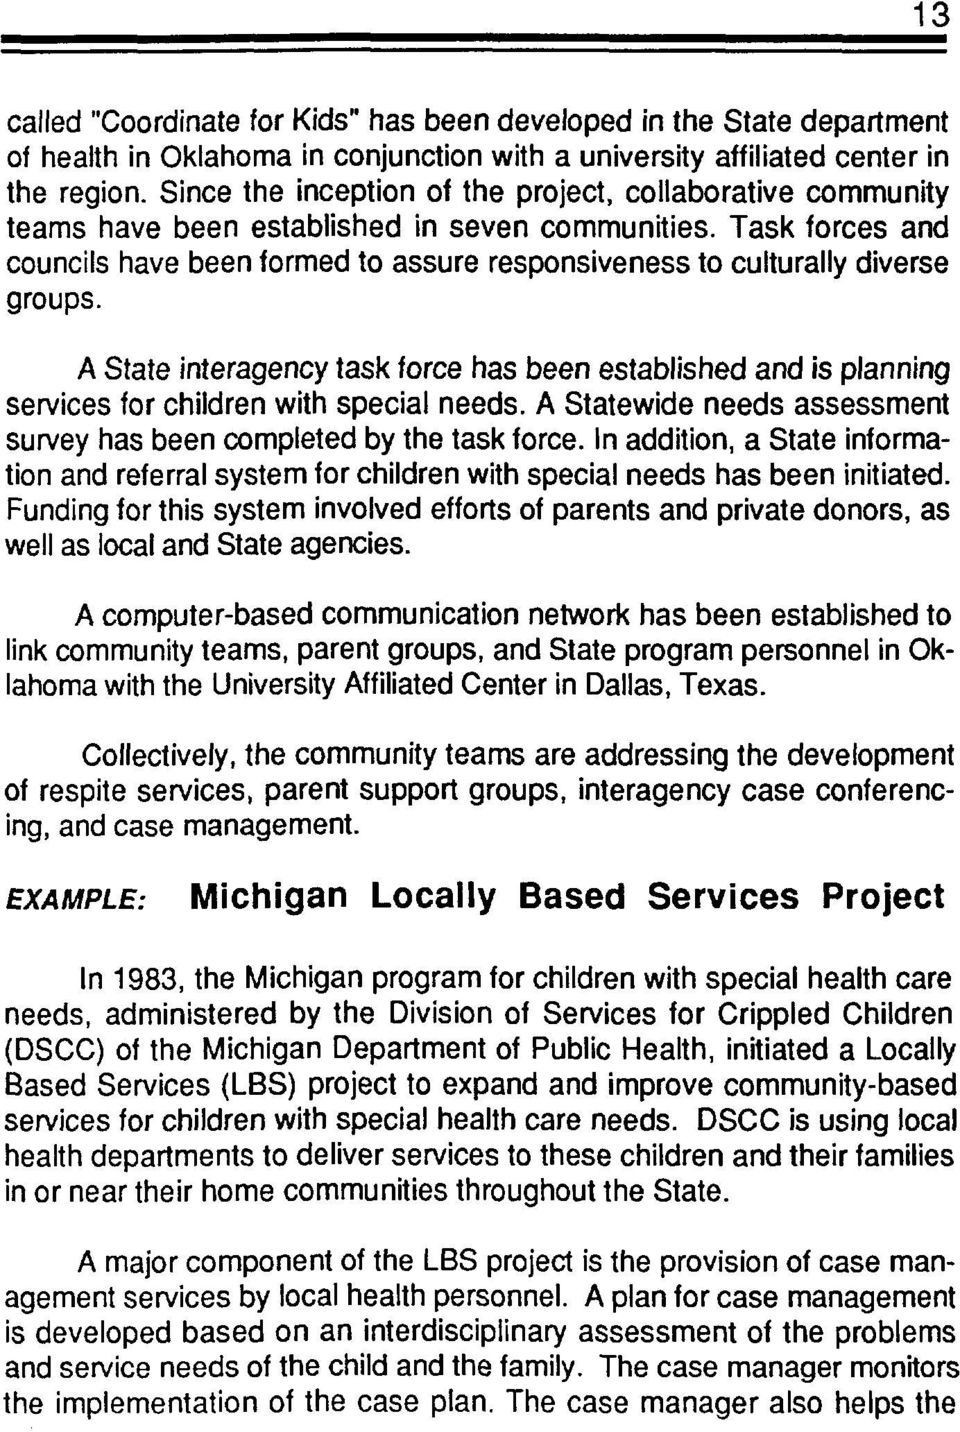 A State interagency task force has been estabished and is panning services for chidren with specia needs. A Statewide needs assessment survey has been competed by the task force.